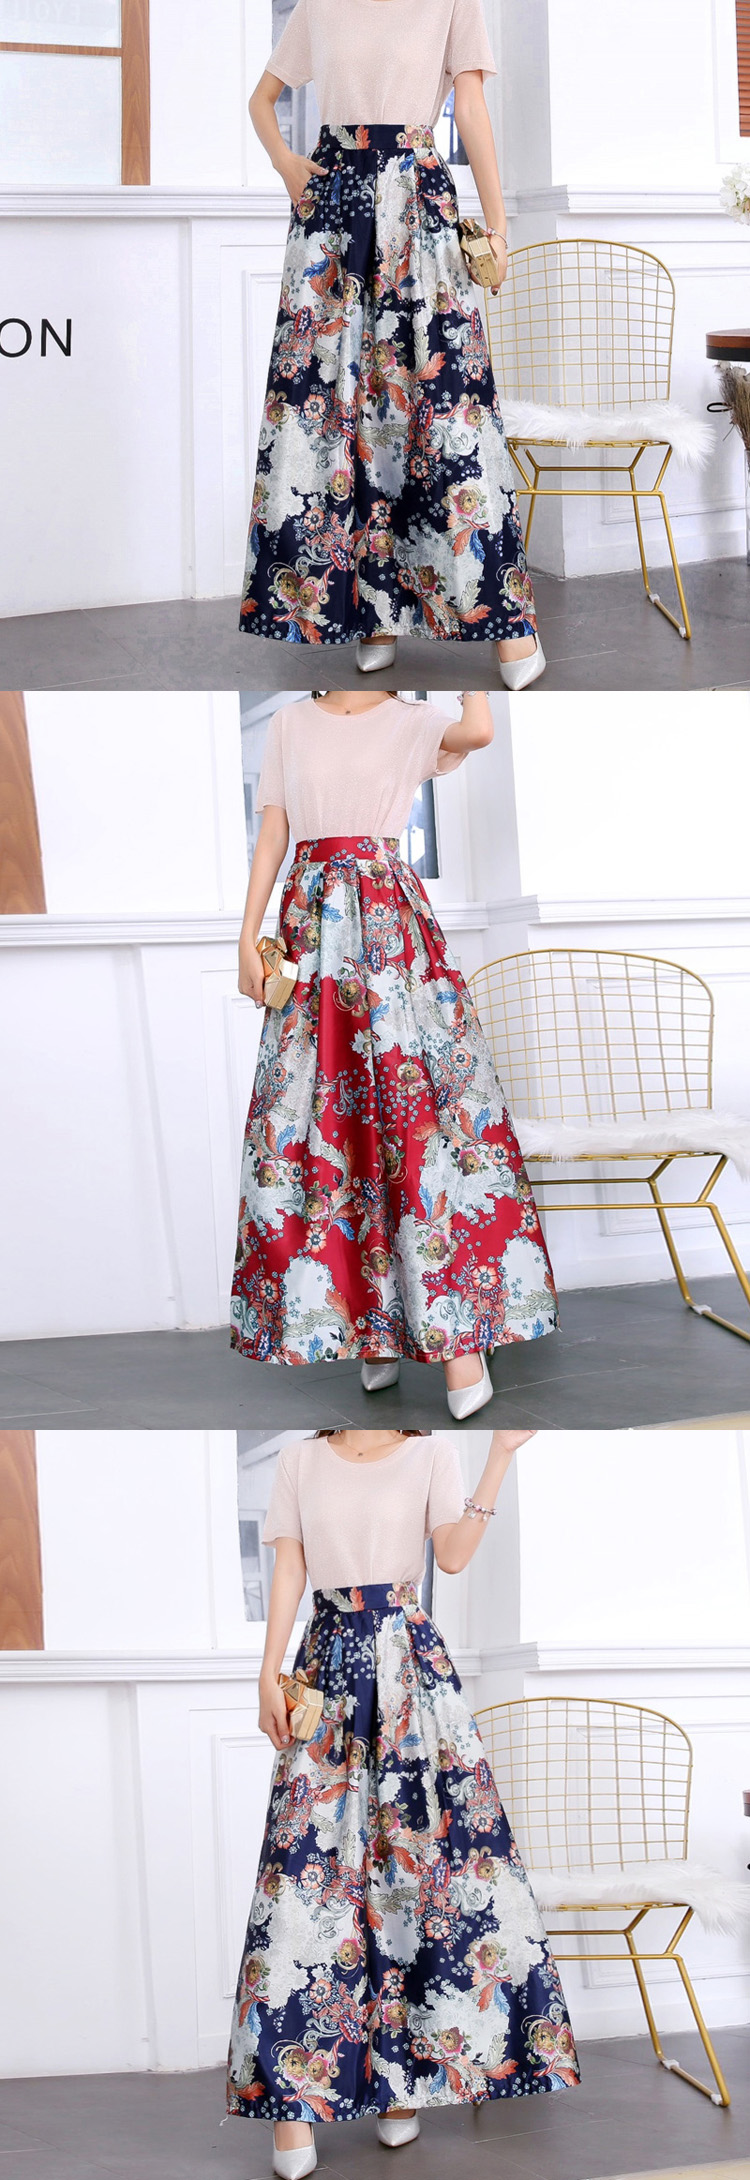 HTB1FRpOUxTpK1RjSZFMq6zG VXae - Plus size Maxi Skirt Summer Fashion Vintage High Street A-line High Waist Floral Polka Dot Long Skirts for Women Jupe Longa